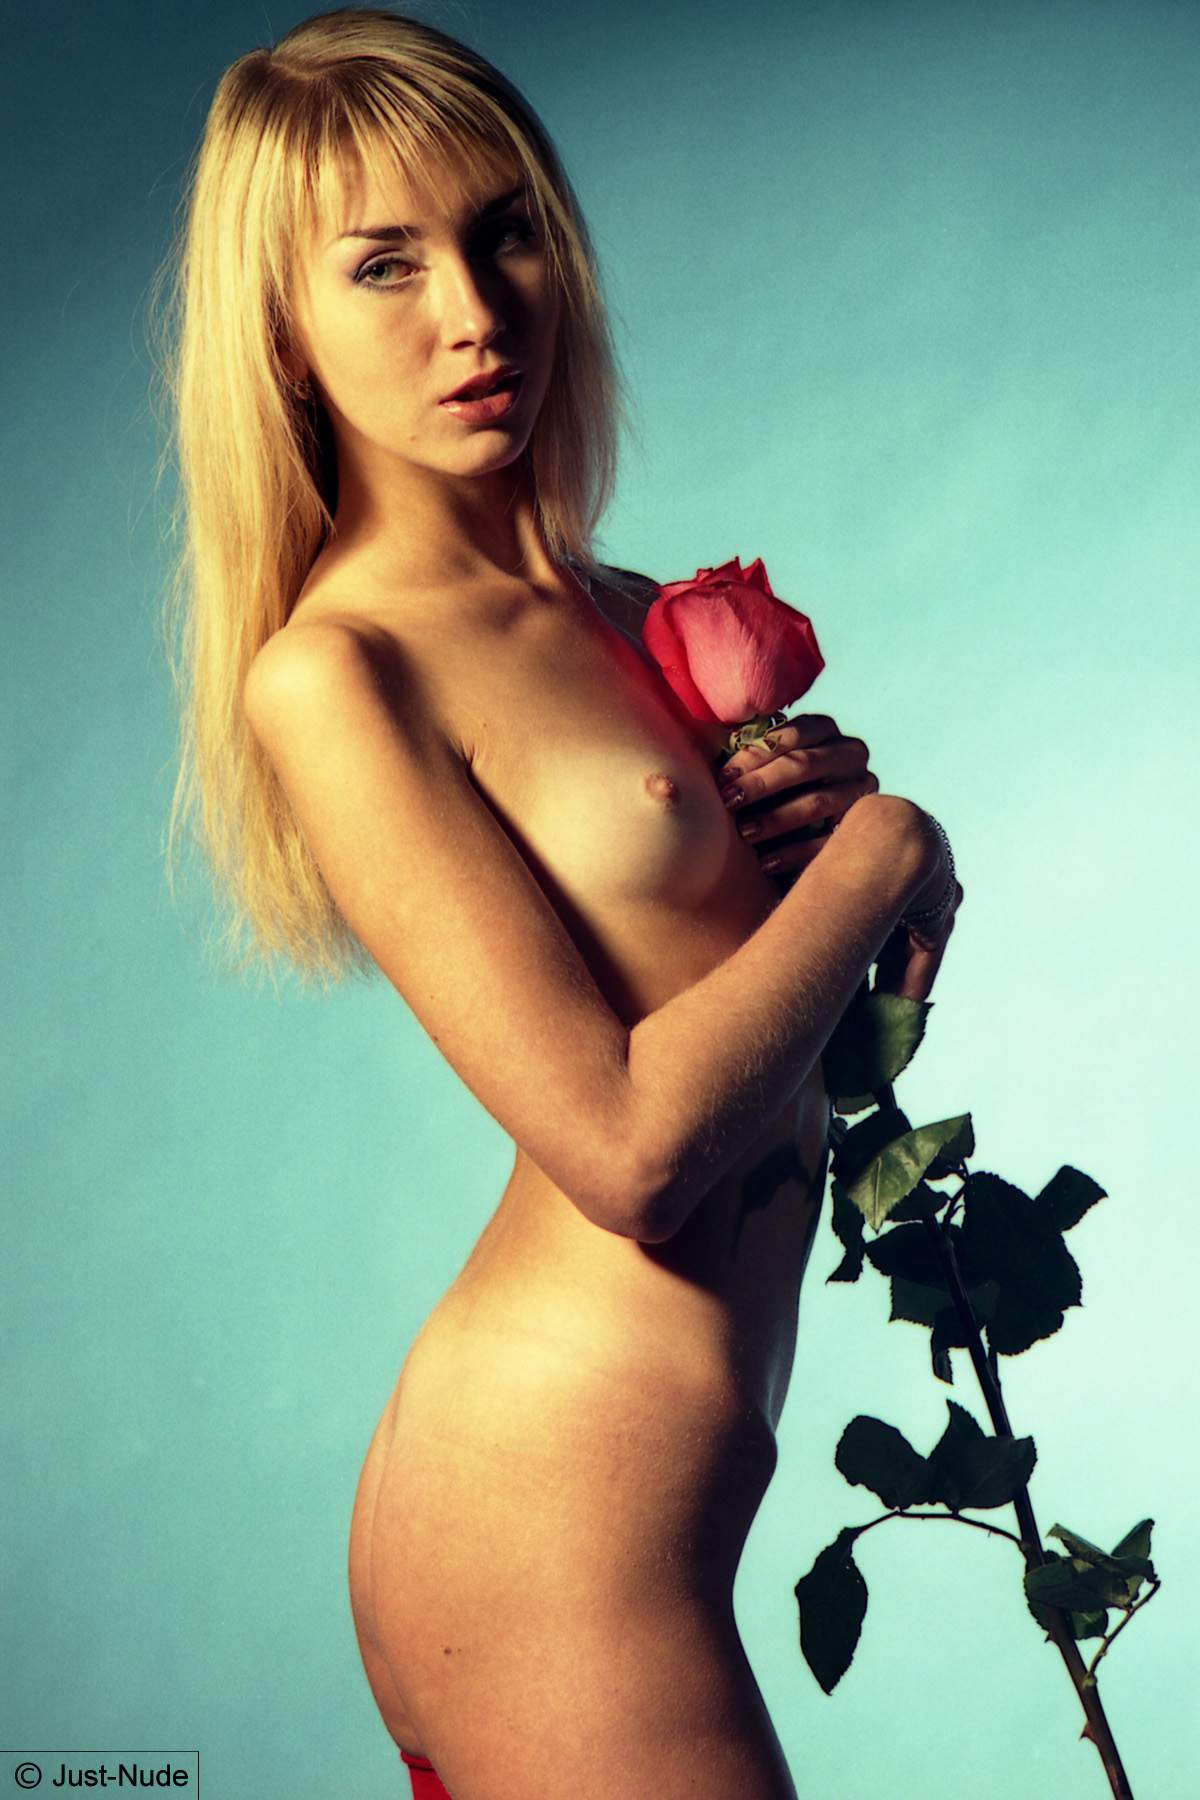 Tanya and the Rose